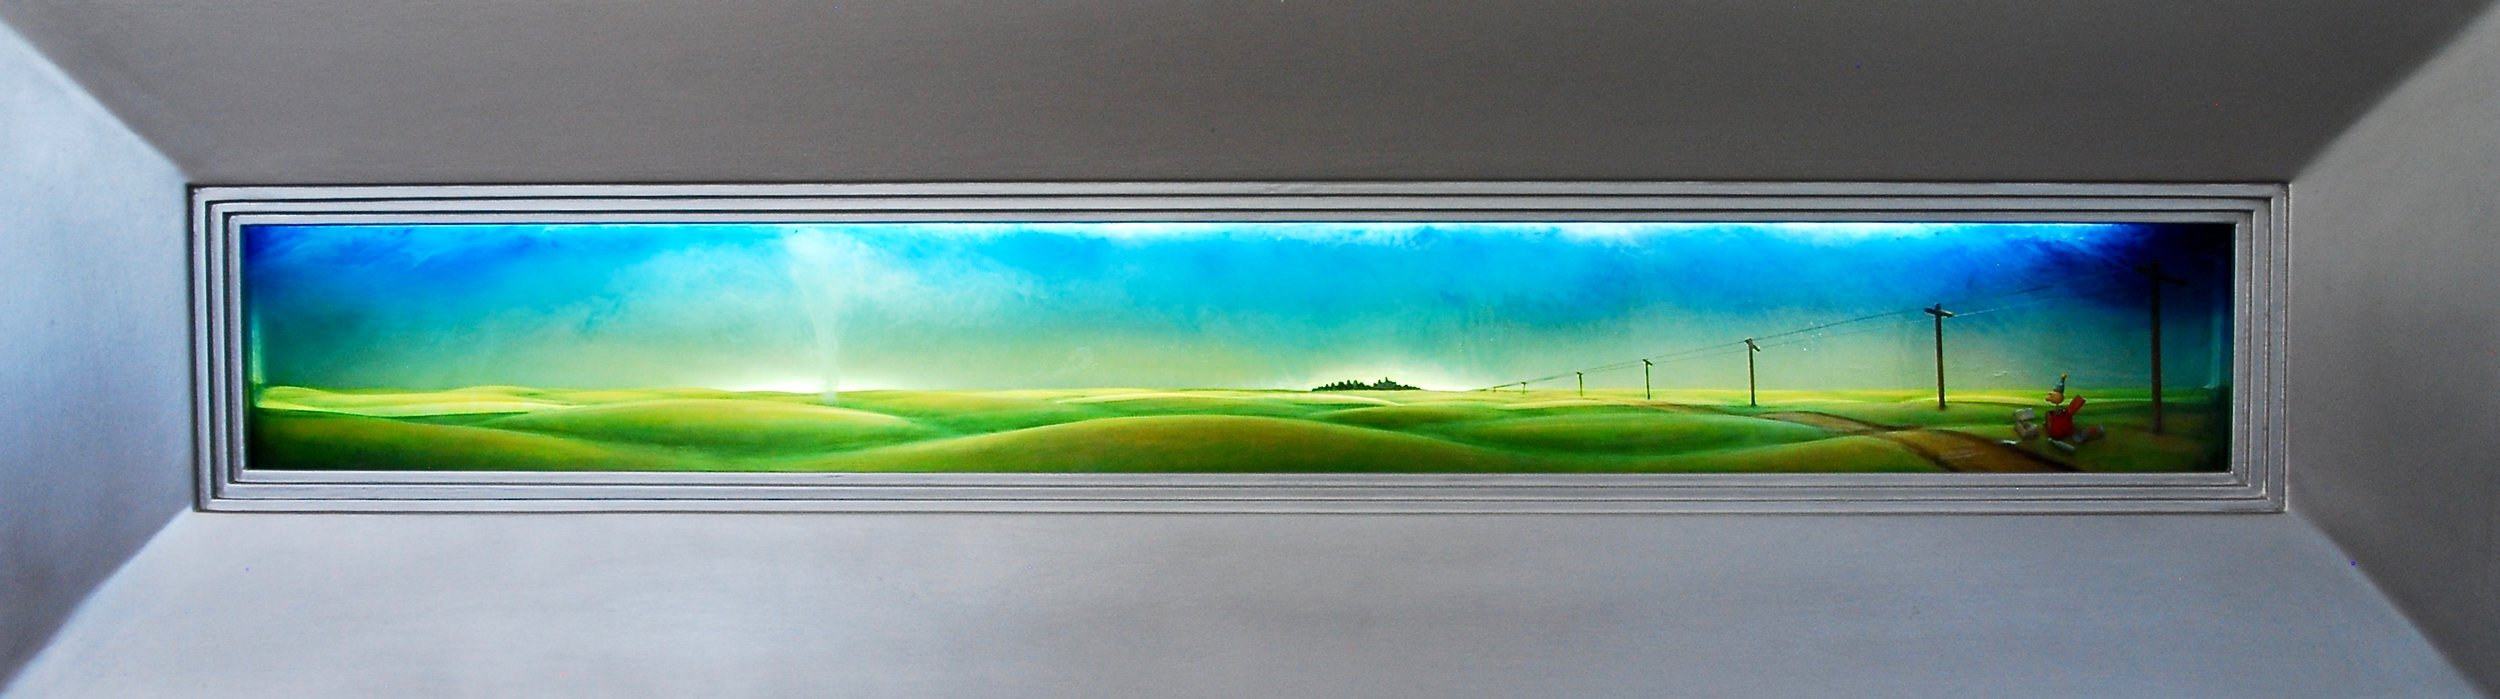 """Thomas Coffin - Lies The Roadside Palm Reader Told Me, 15""""h x 48""""w x 4 1/2"""" d, mixed media 3-d diorama encased in acrylic resin, handmade wood frame, aluminum finish"""